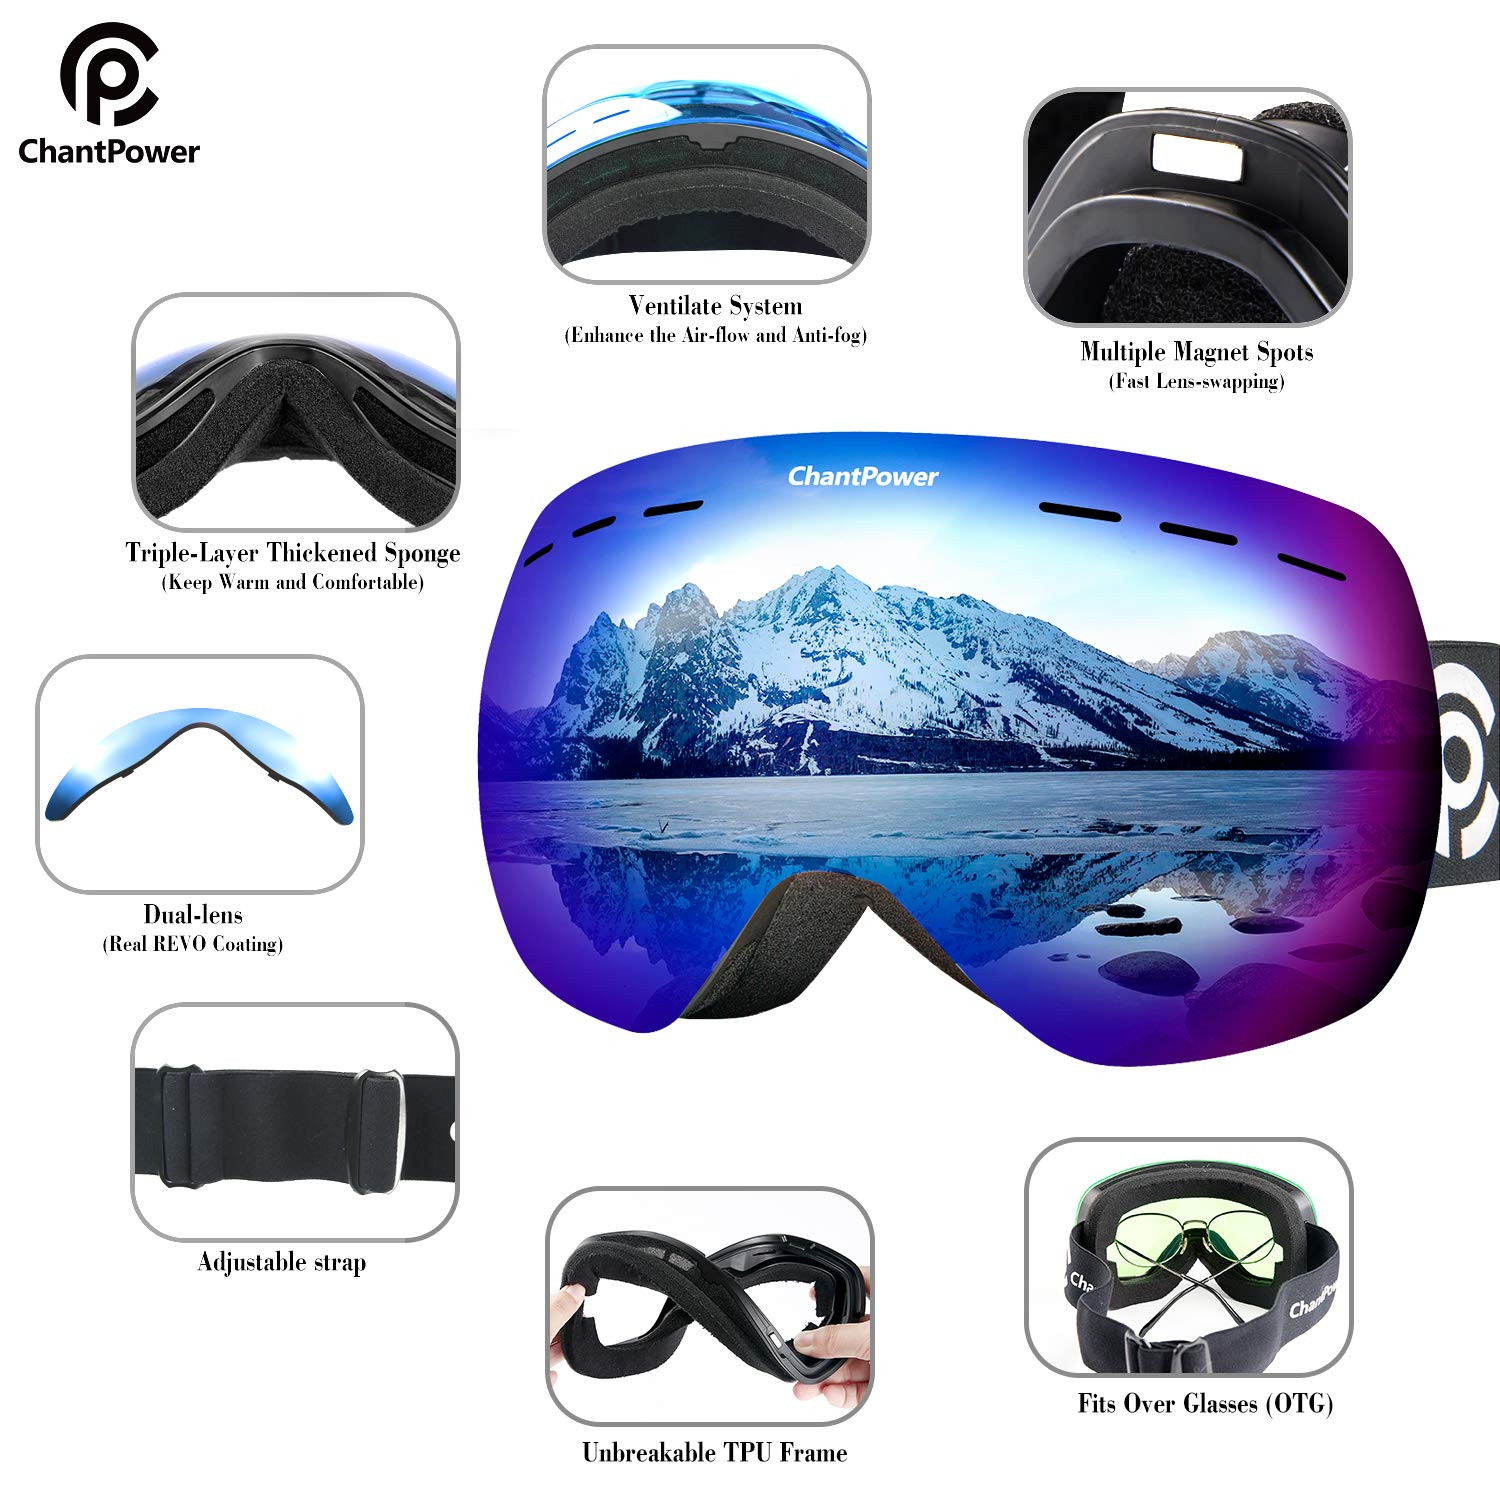 157f20524a3 2 Lenses Included ChantPower Ski Goggles Frameless Magnetic Snowboard  Goggles 2 Seconds Quick Interchangeable Spherical Lenses ...